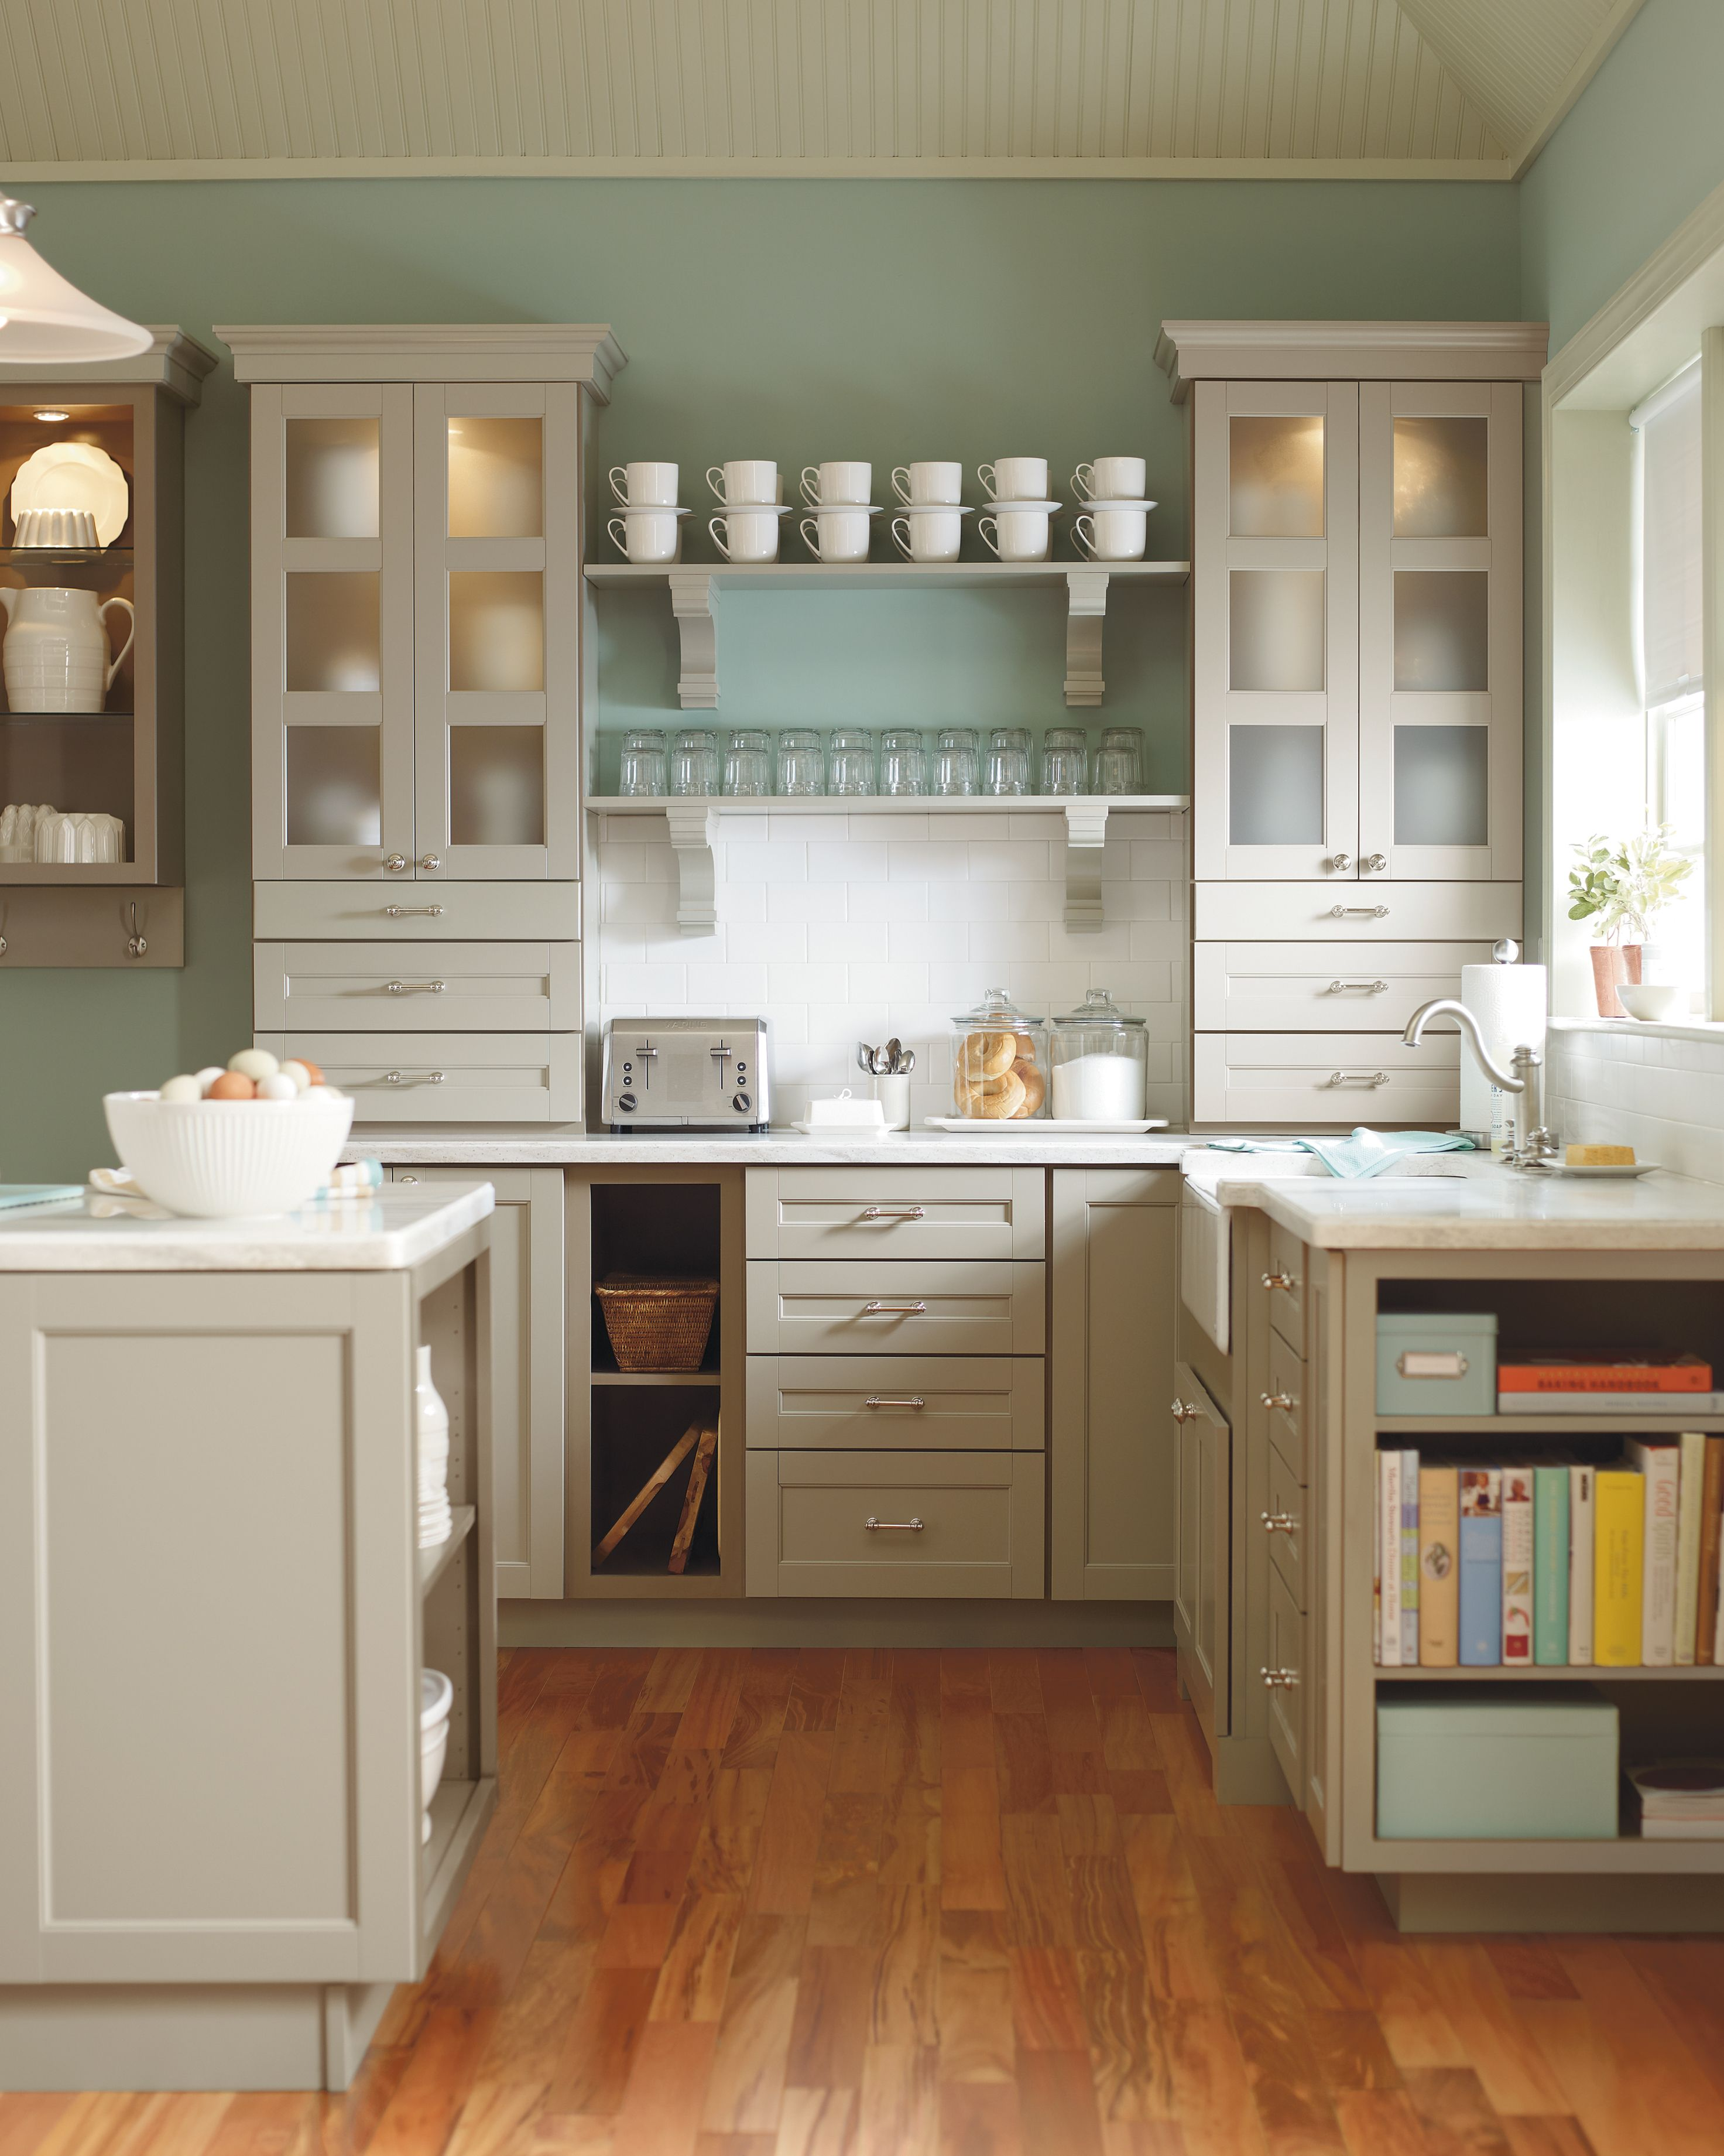 How To Pick Kitchen Paint Colors In 2020 Kitchen Remodel Pictures Kitchen Colors Kitchen Remodel